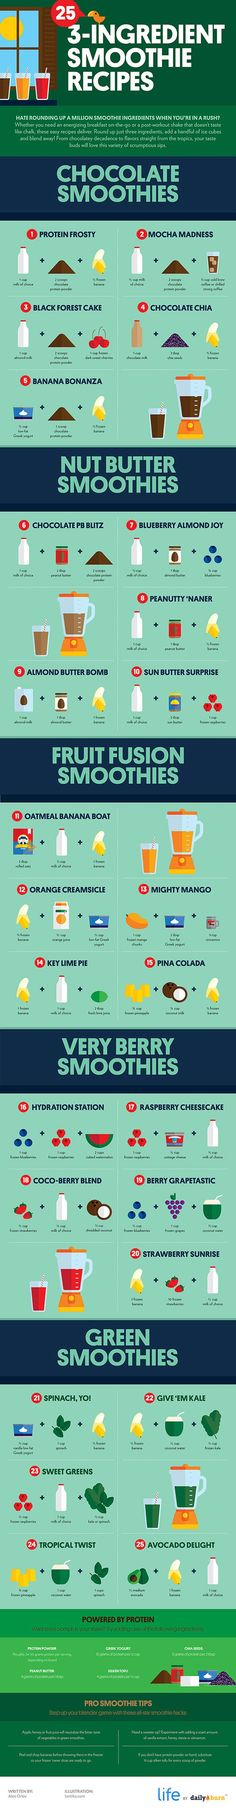 These smoothie recipes only require 3 ingredients!